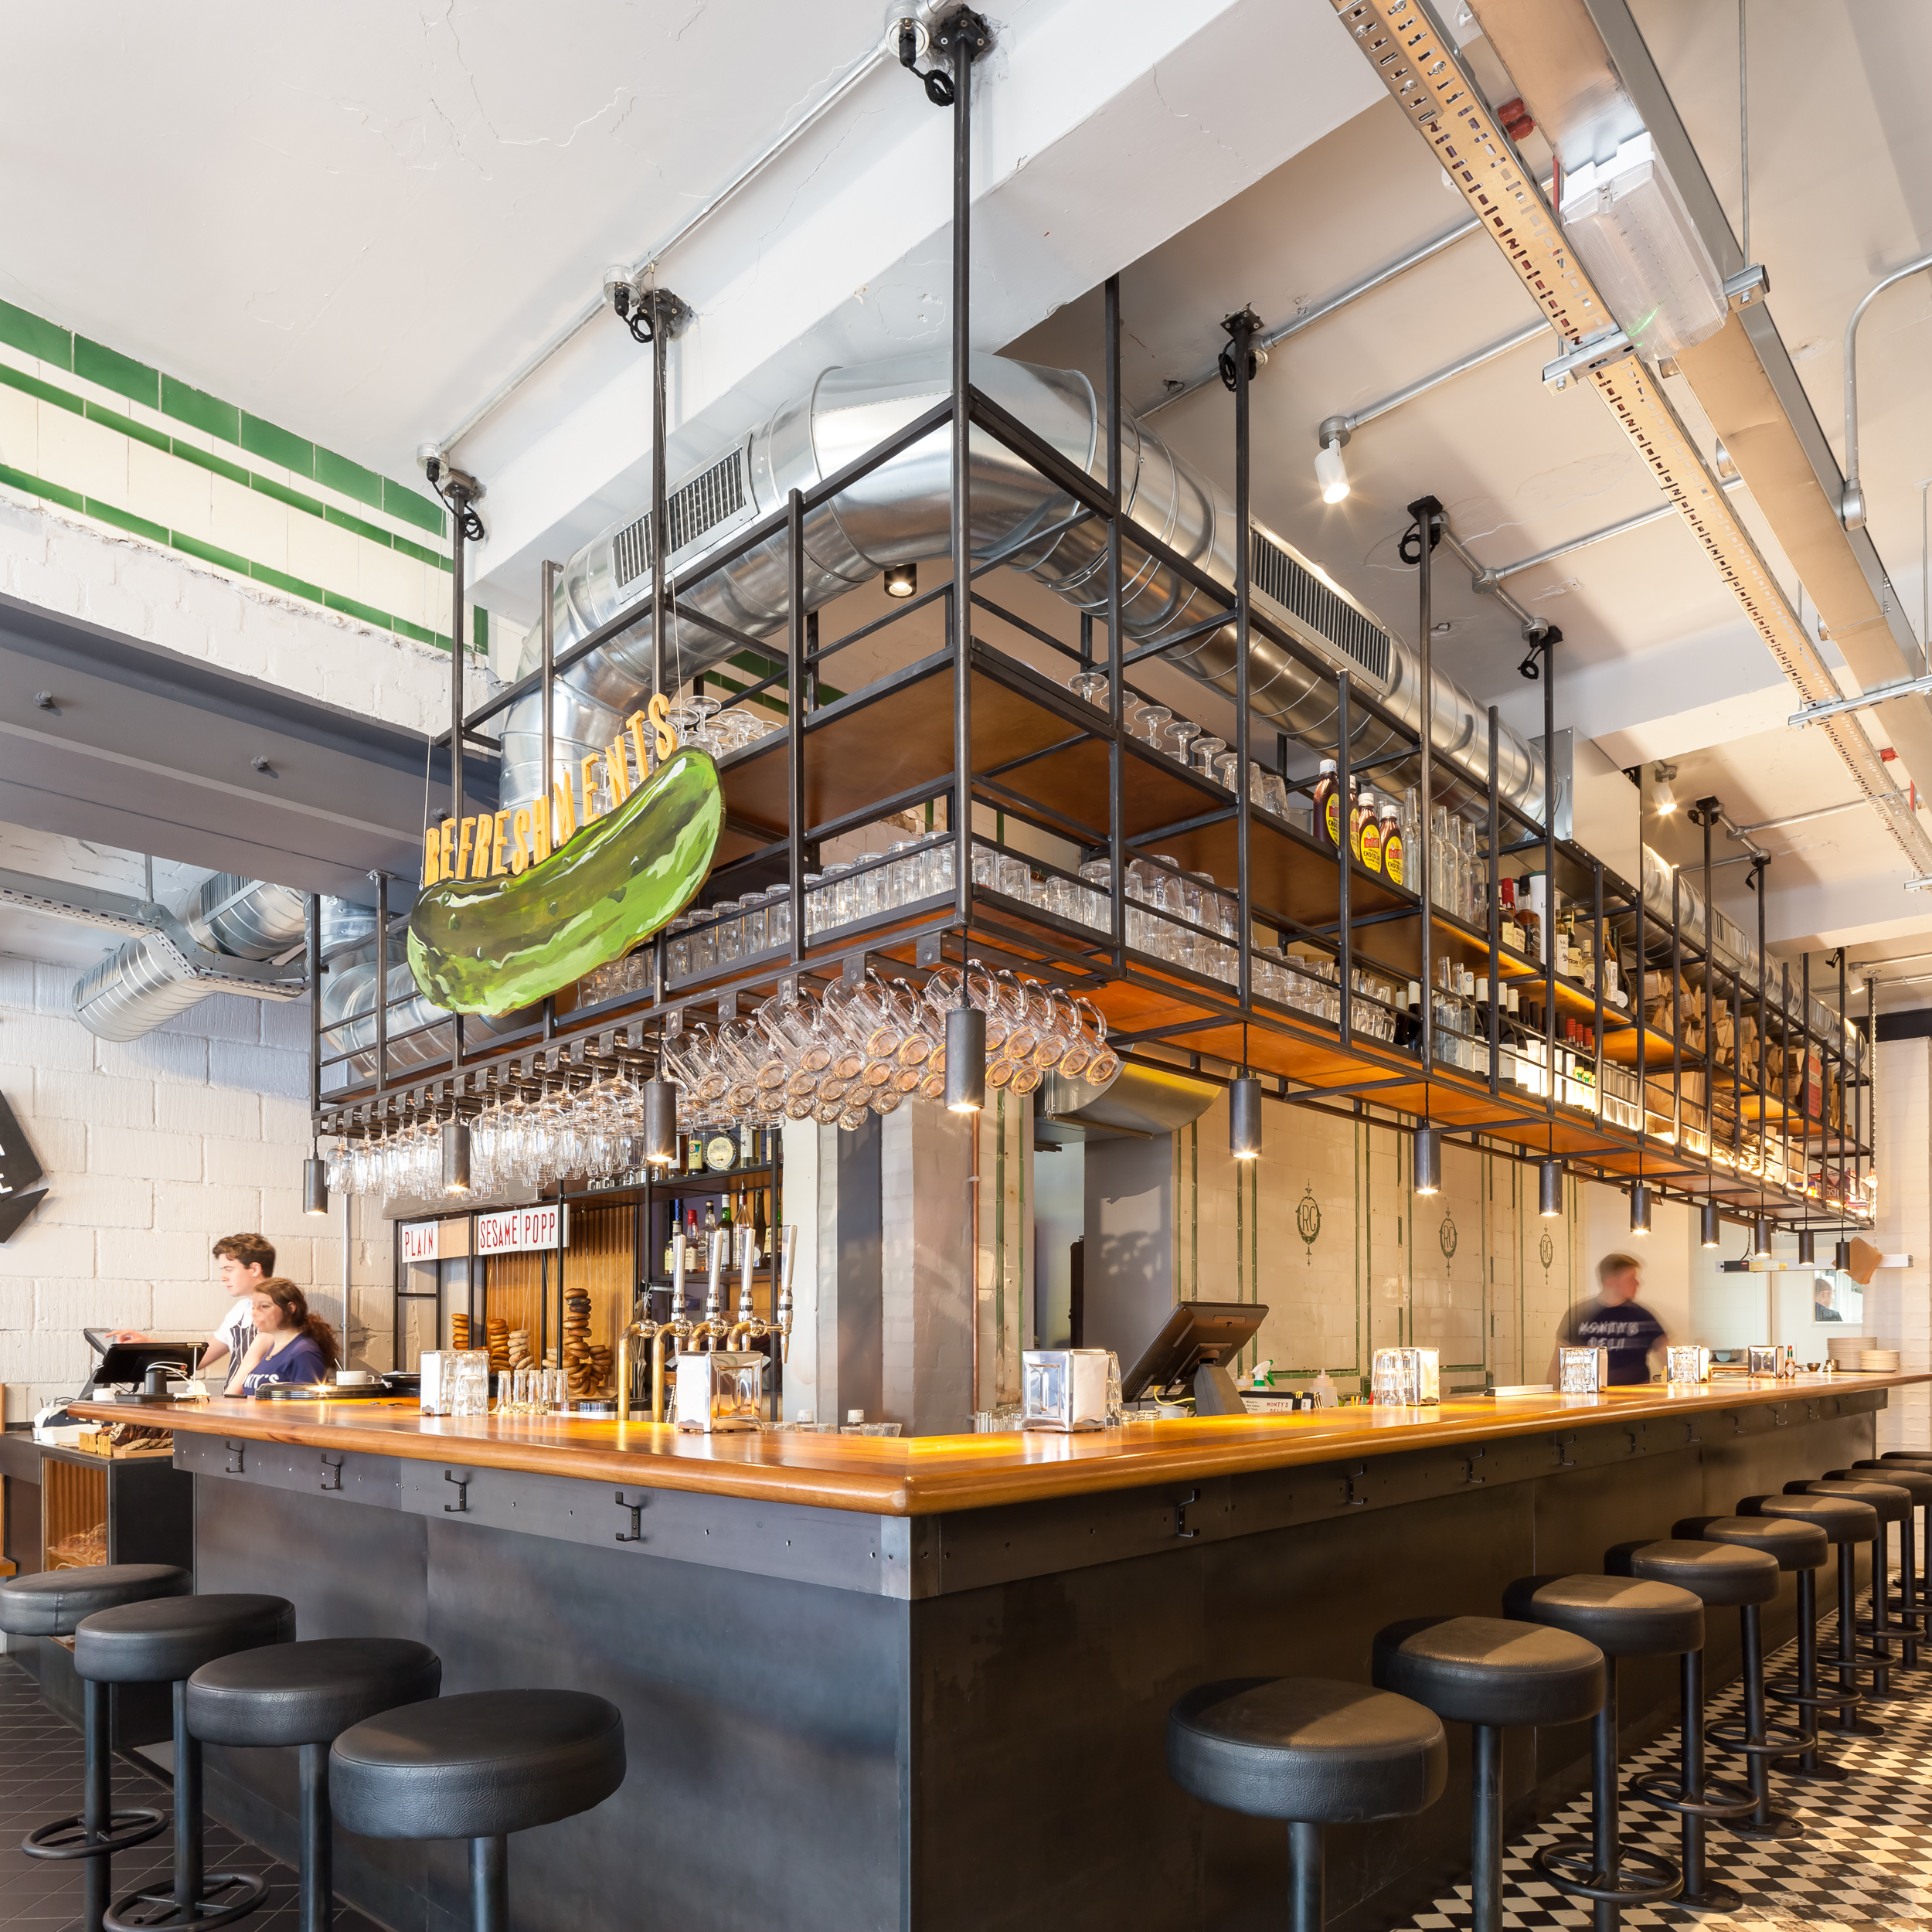 Pano_0484_0487-Edit - MATA_Architects_Montys_Deli.jpg